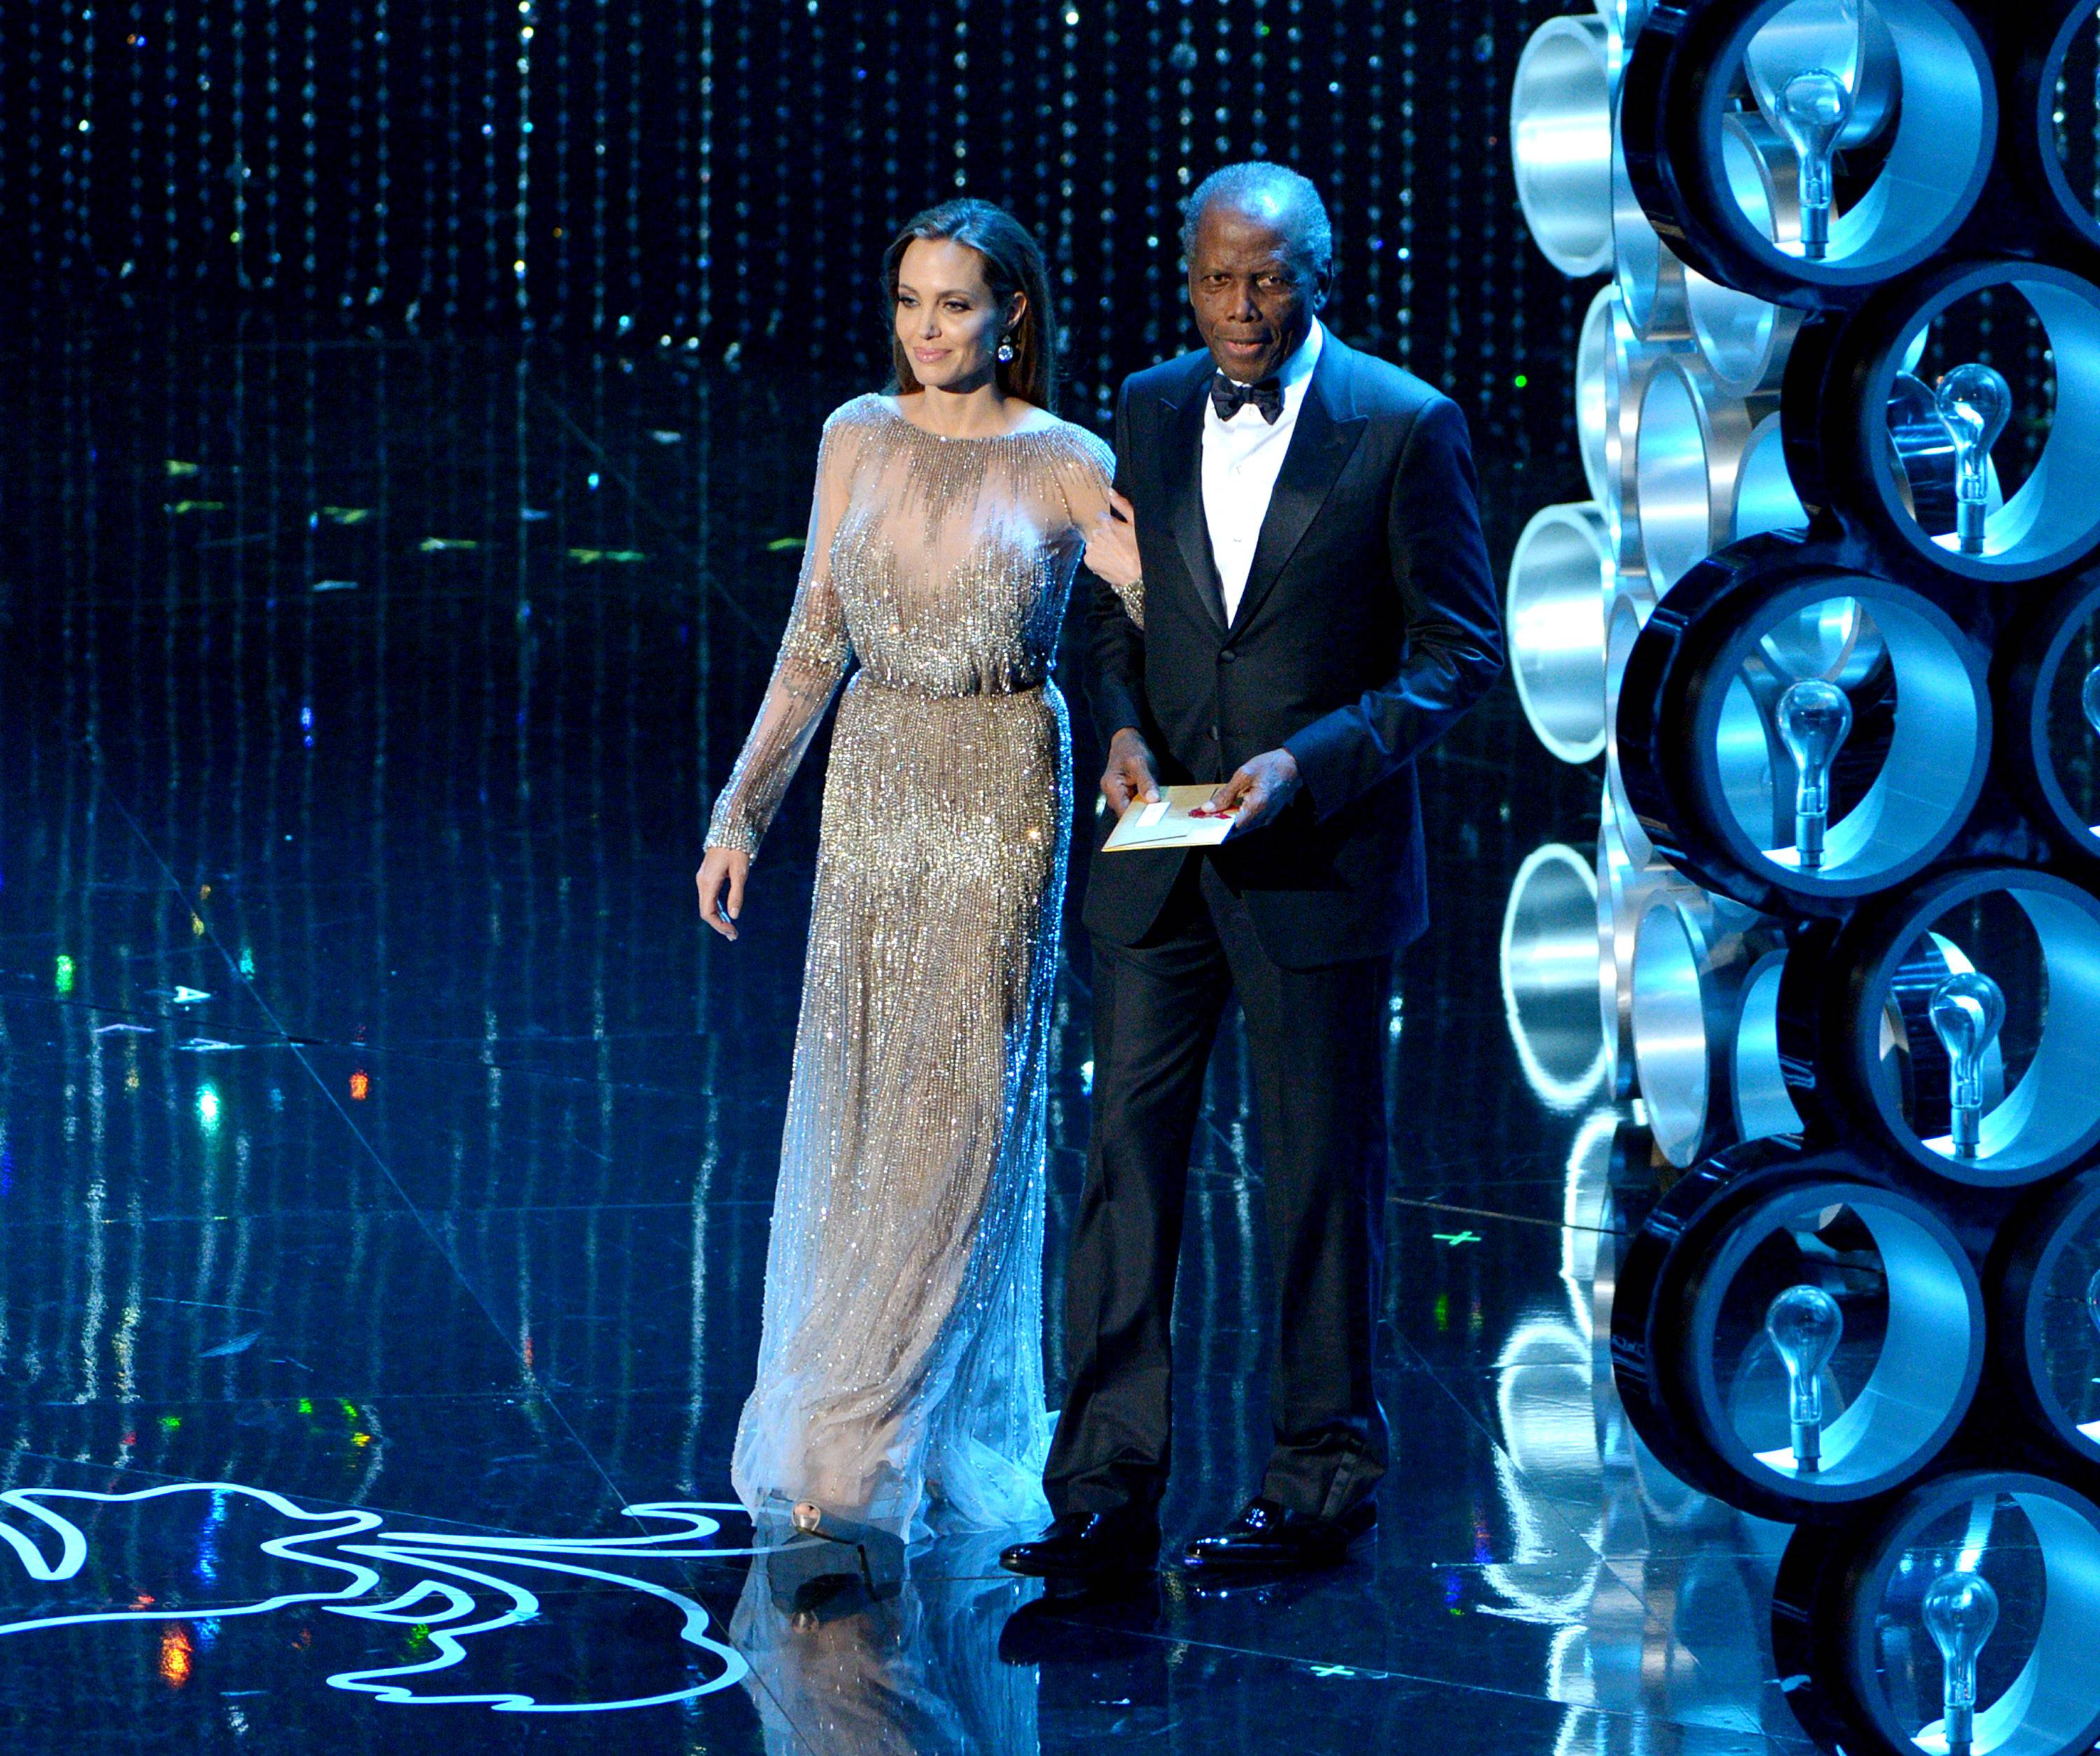 Angelina Jolie and Sidney Poitier walk on stage to present the award for best director during the Oscars.